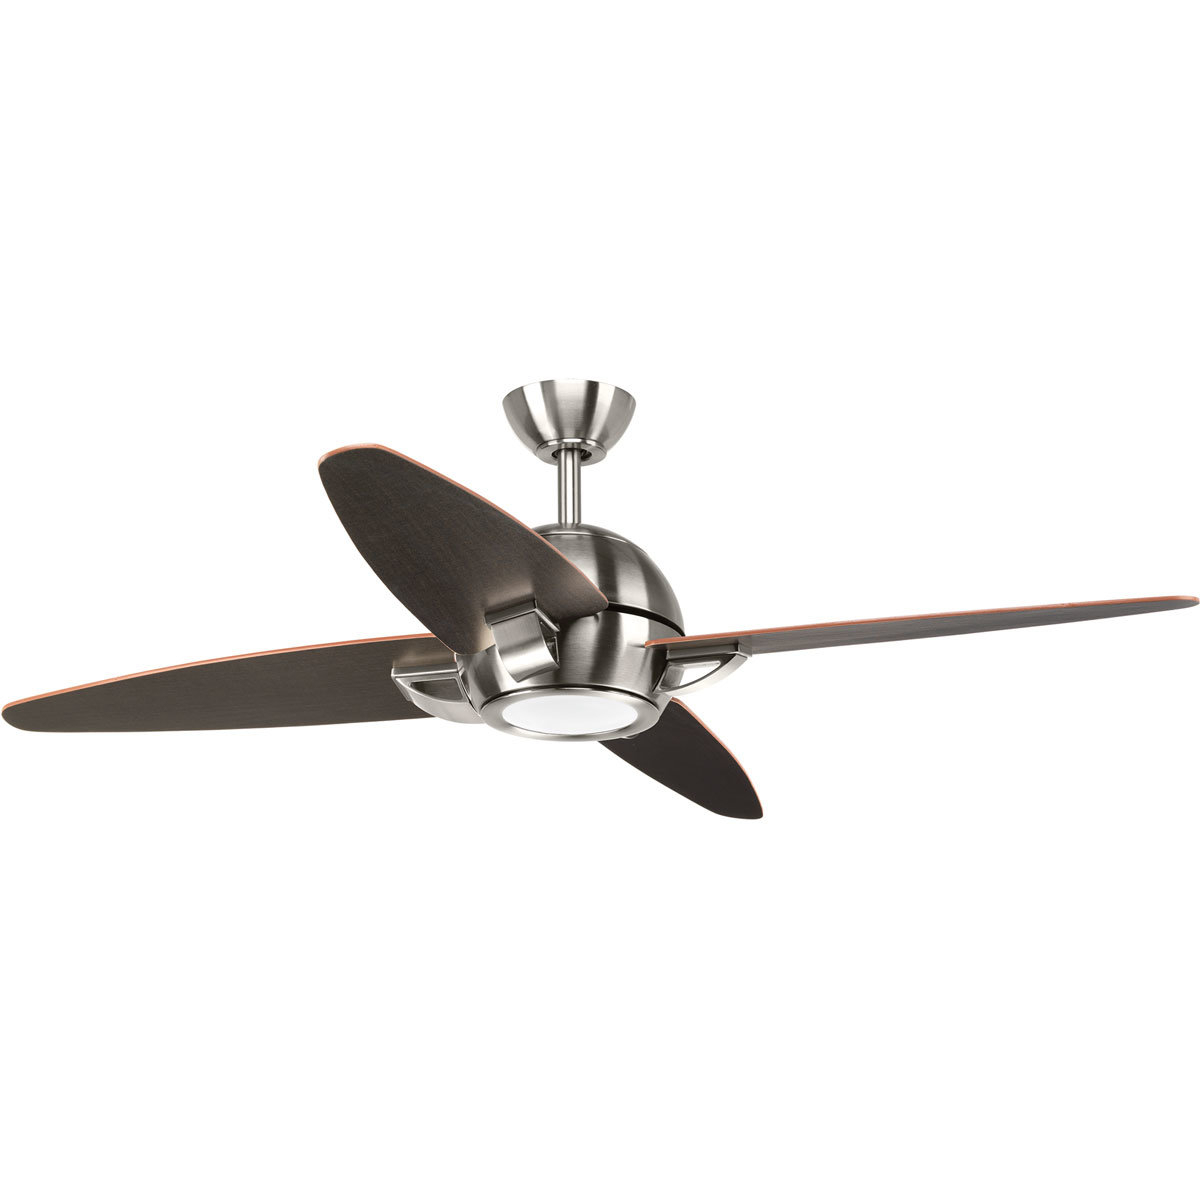 "Trendy 54"" Ming 4 Blade Led Ceiling Fan With Remote With Cranbrook 4 Blade Ceiling Fans (View 16 of 20)"